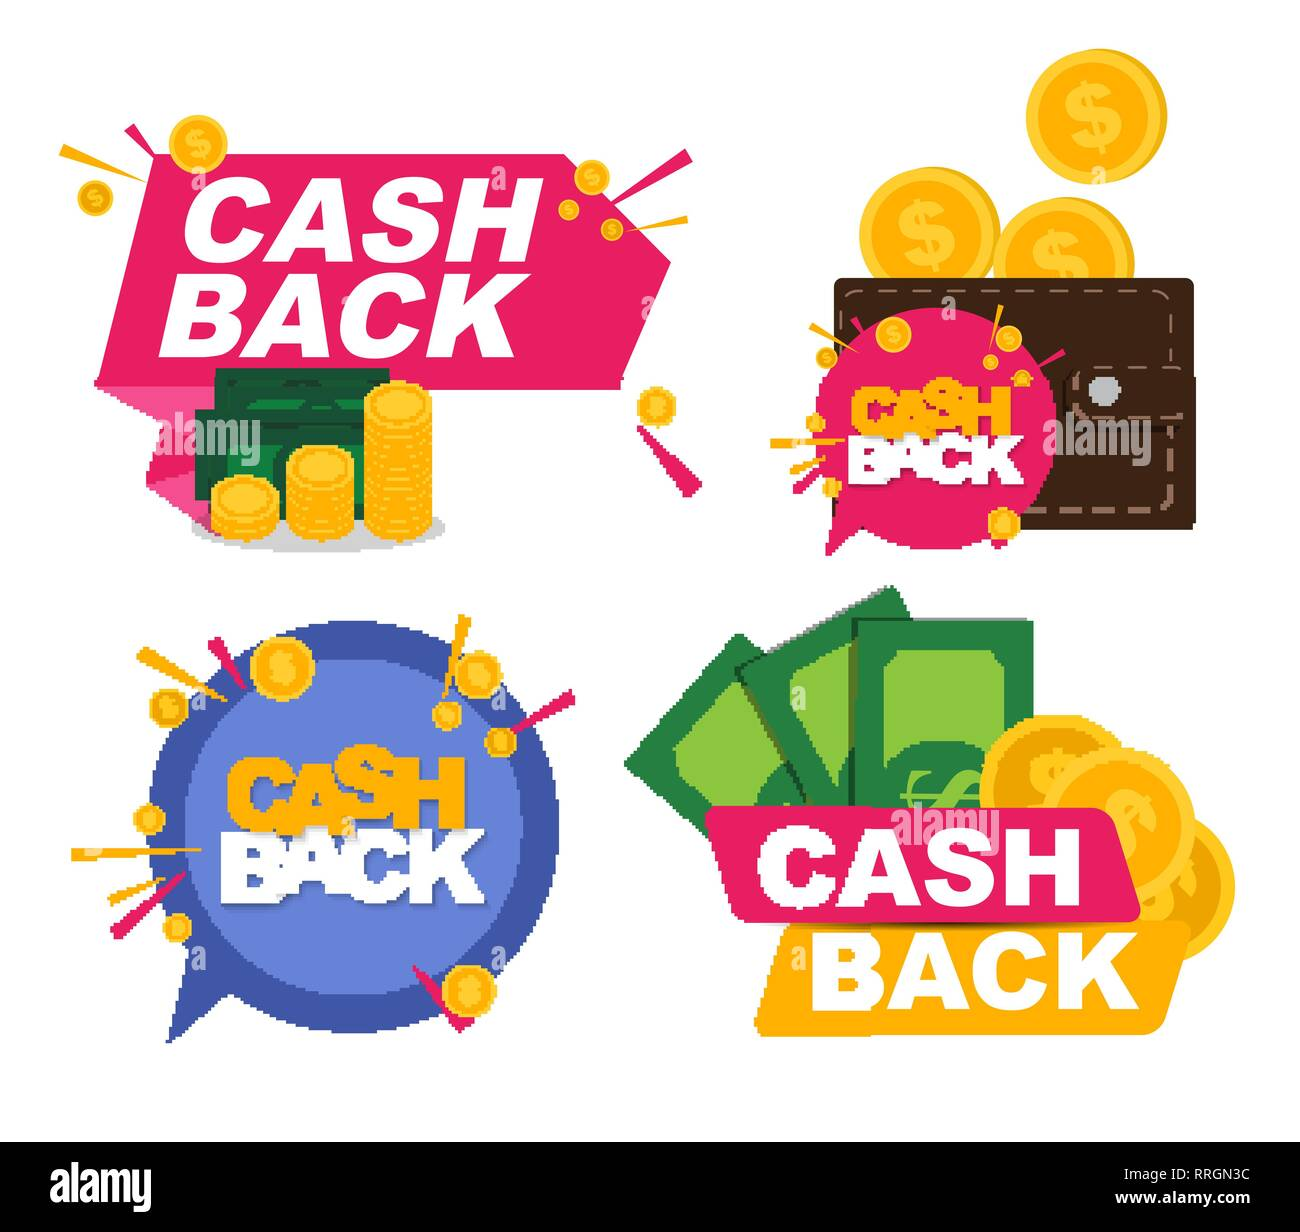 money cashback icon cillection set with gold dollar coins vector illustration eps10 stock vector image art alamy https www alamy com money cashback icon cillection set with gold dollar coins vector illustration eps10 image238239664 html